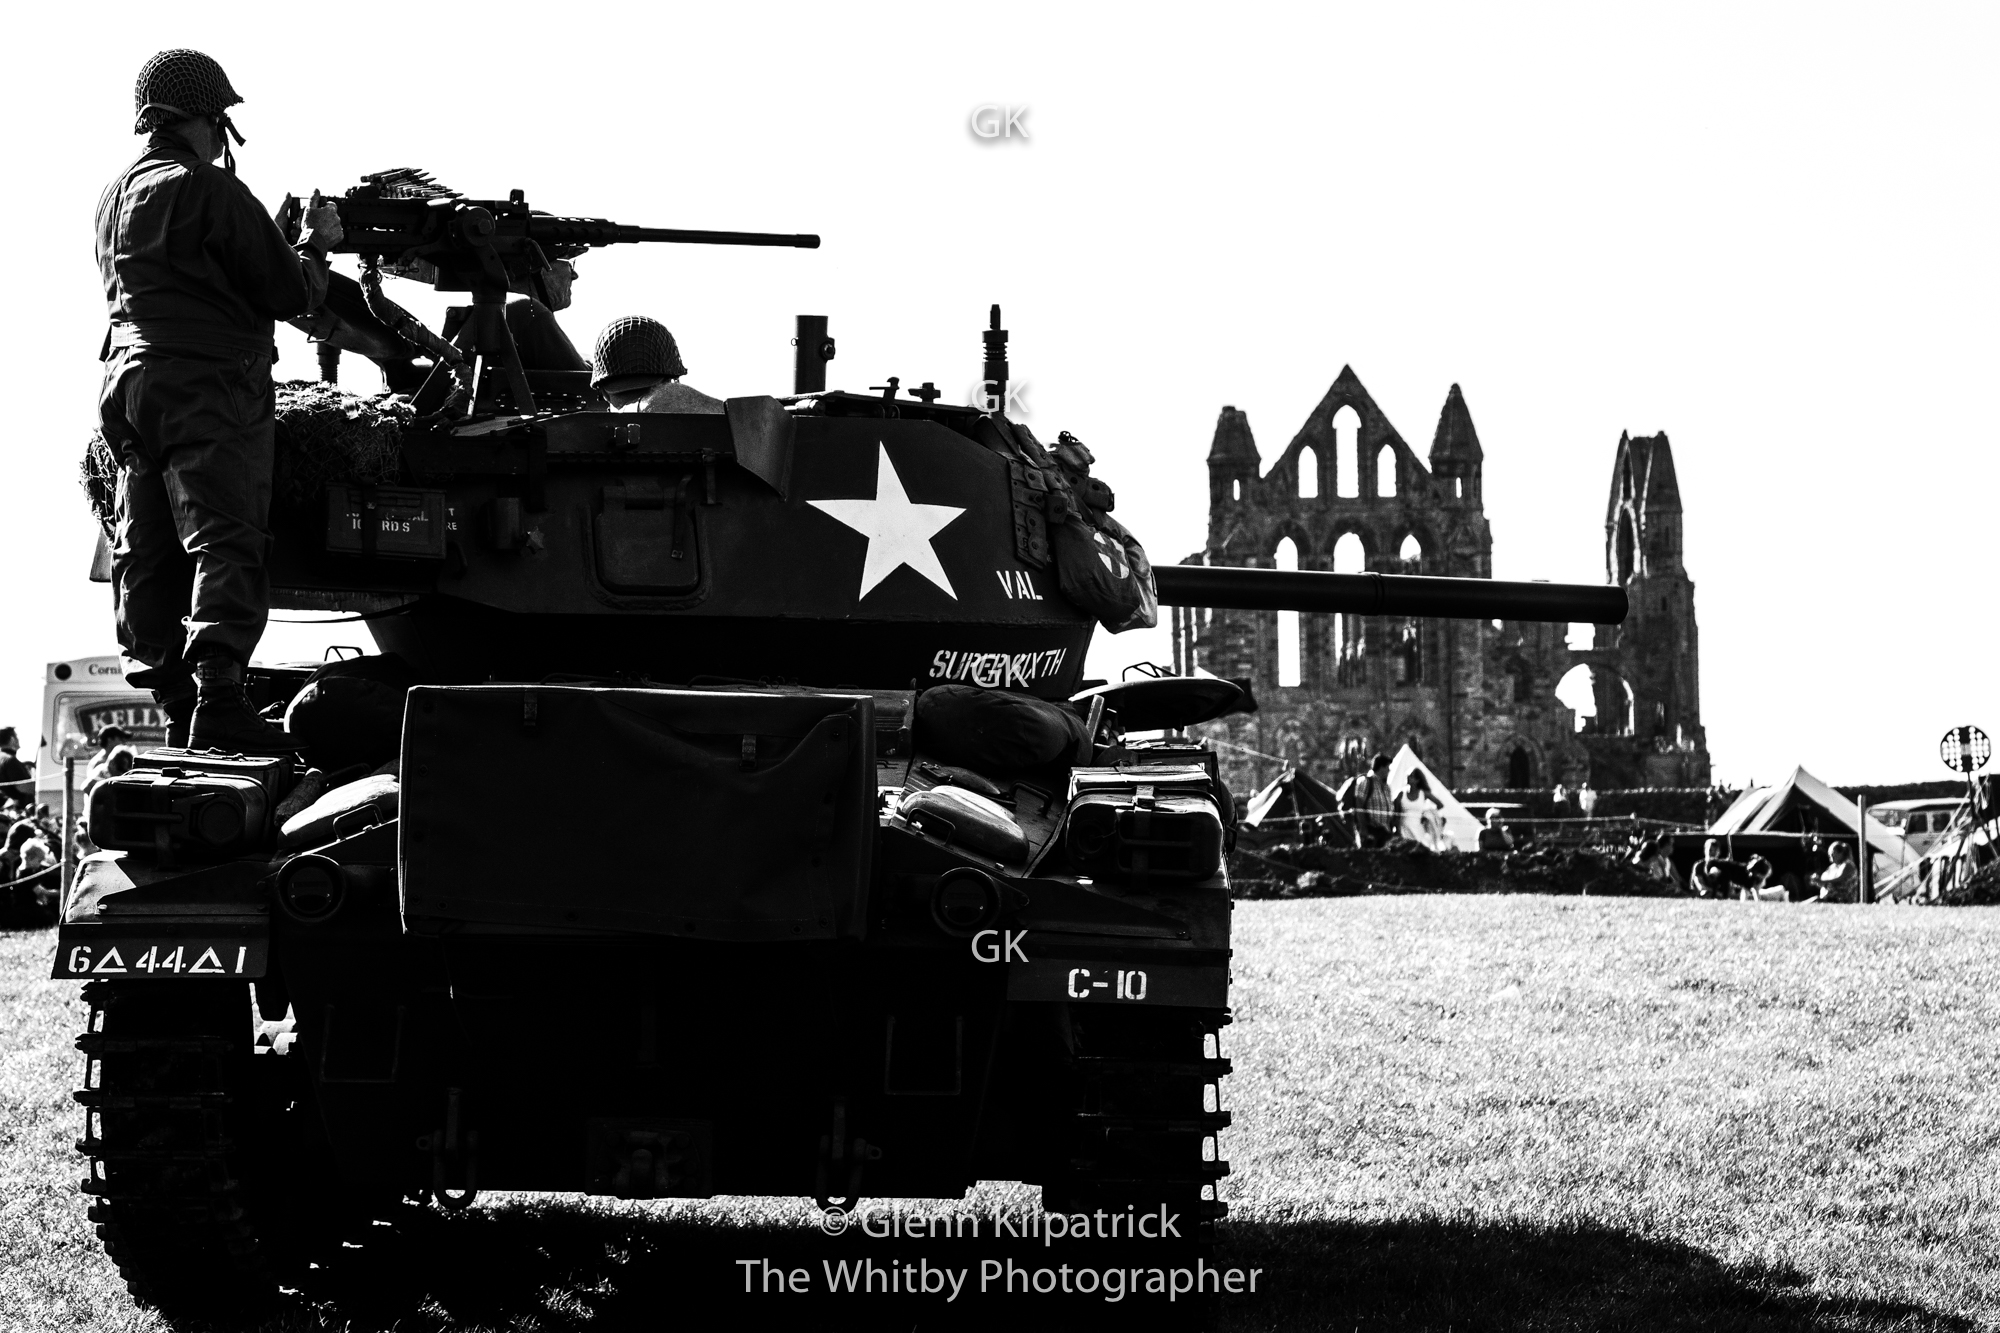 Whitby War Weekend